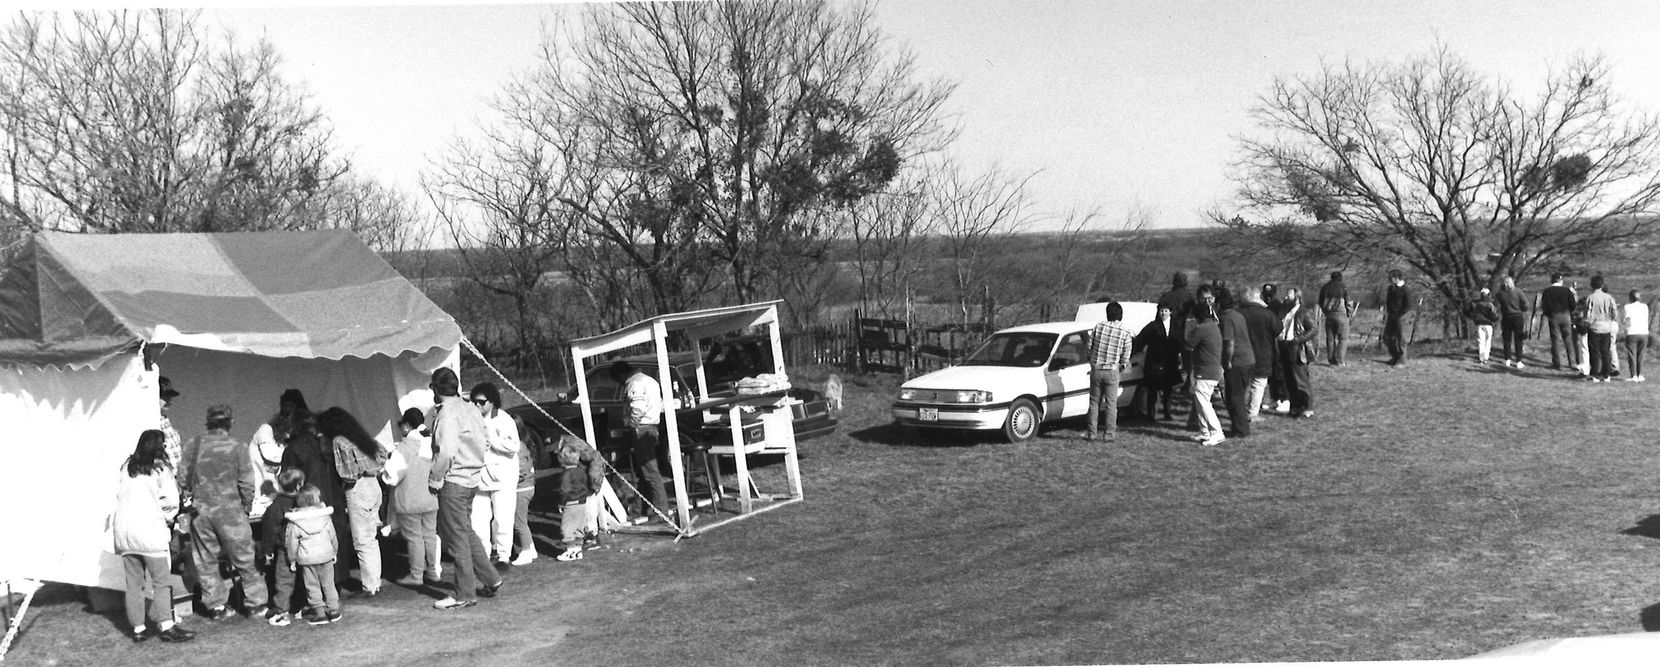 """March 12, 1993: Vendors sell merchandise to onlookers in Waco. The tent on the left sold T-shirts, while the booth in the middle served """"Koresh Burgers and Dogs."""" Rosaline Eastepp sold T-shirts out of the white car."""